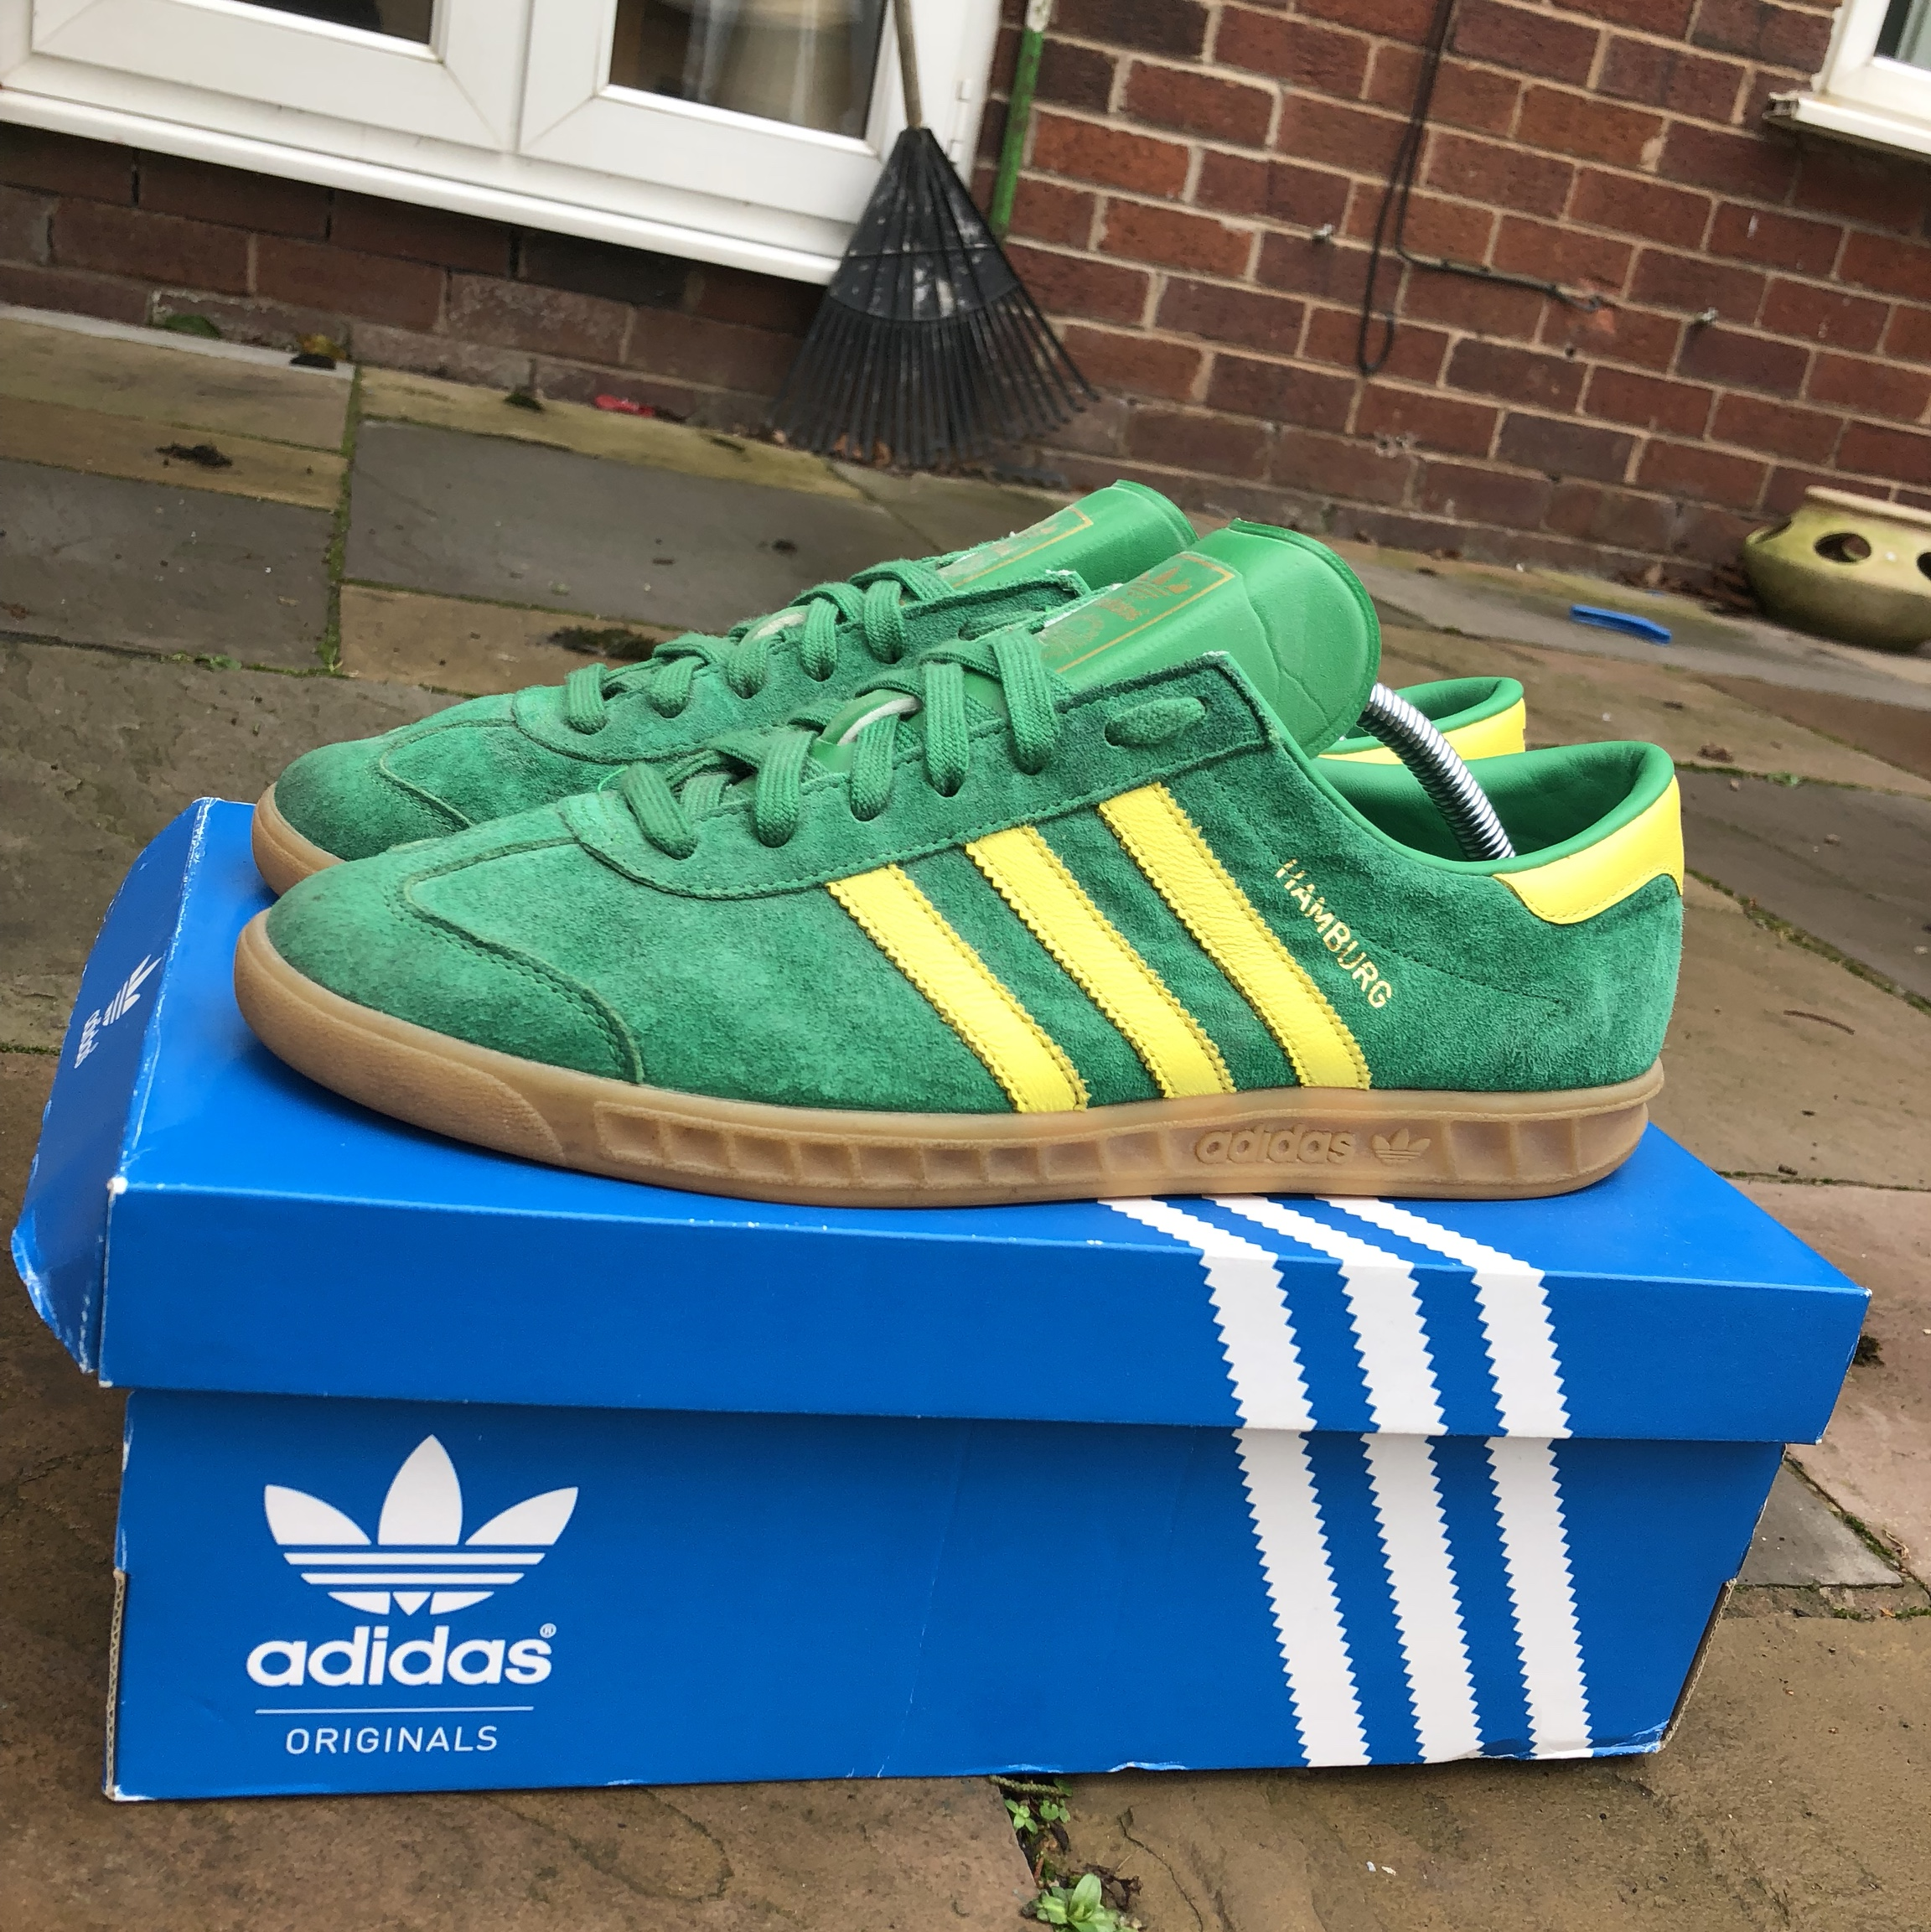 12 And Size Adidas Depop Yellow Trainers 9 Green Hamburg 7yfYbg6